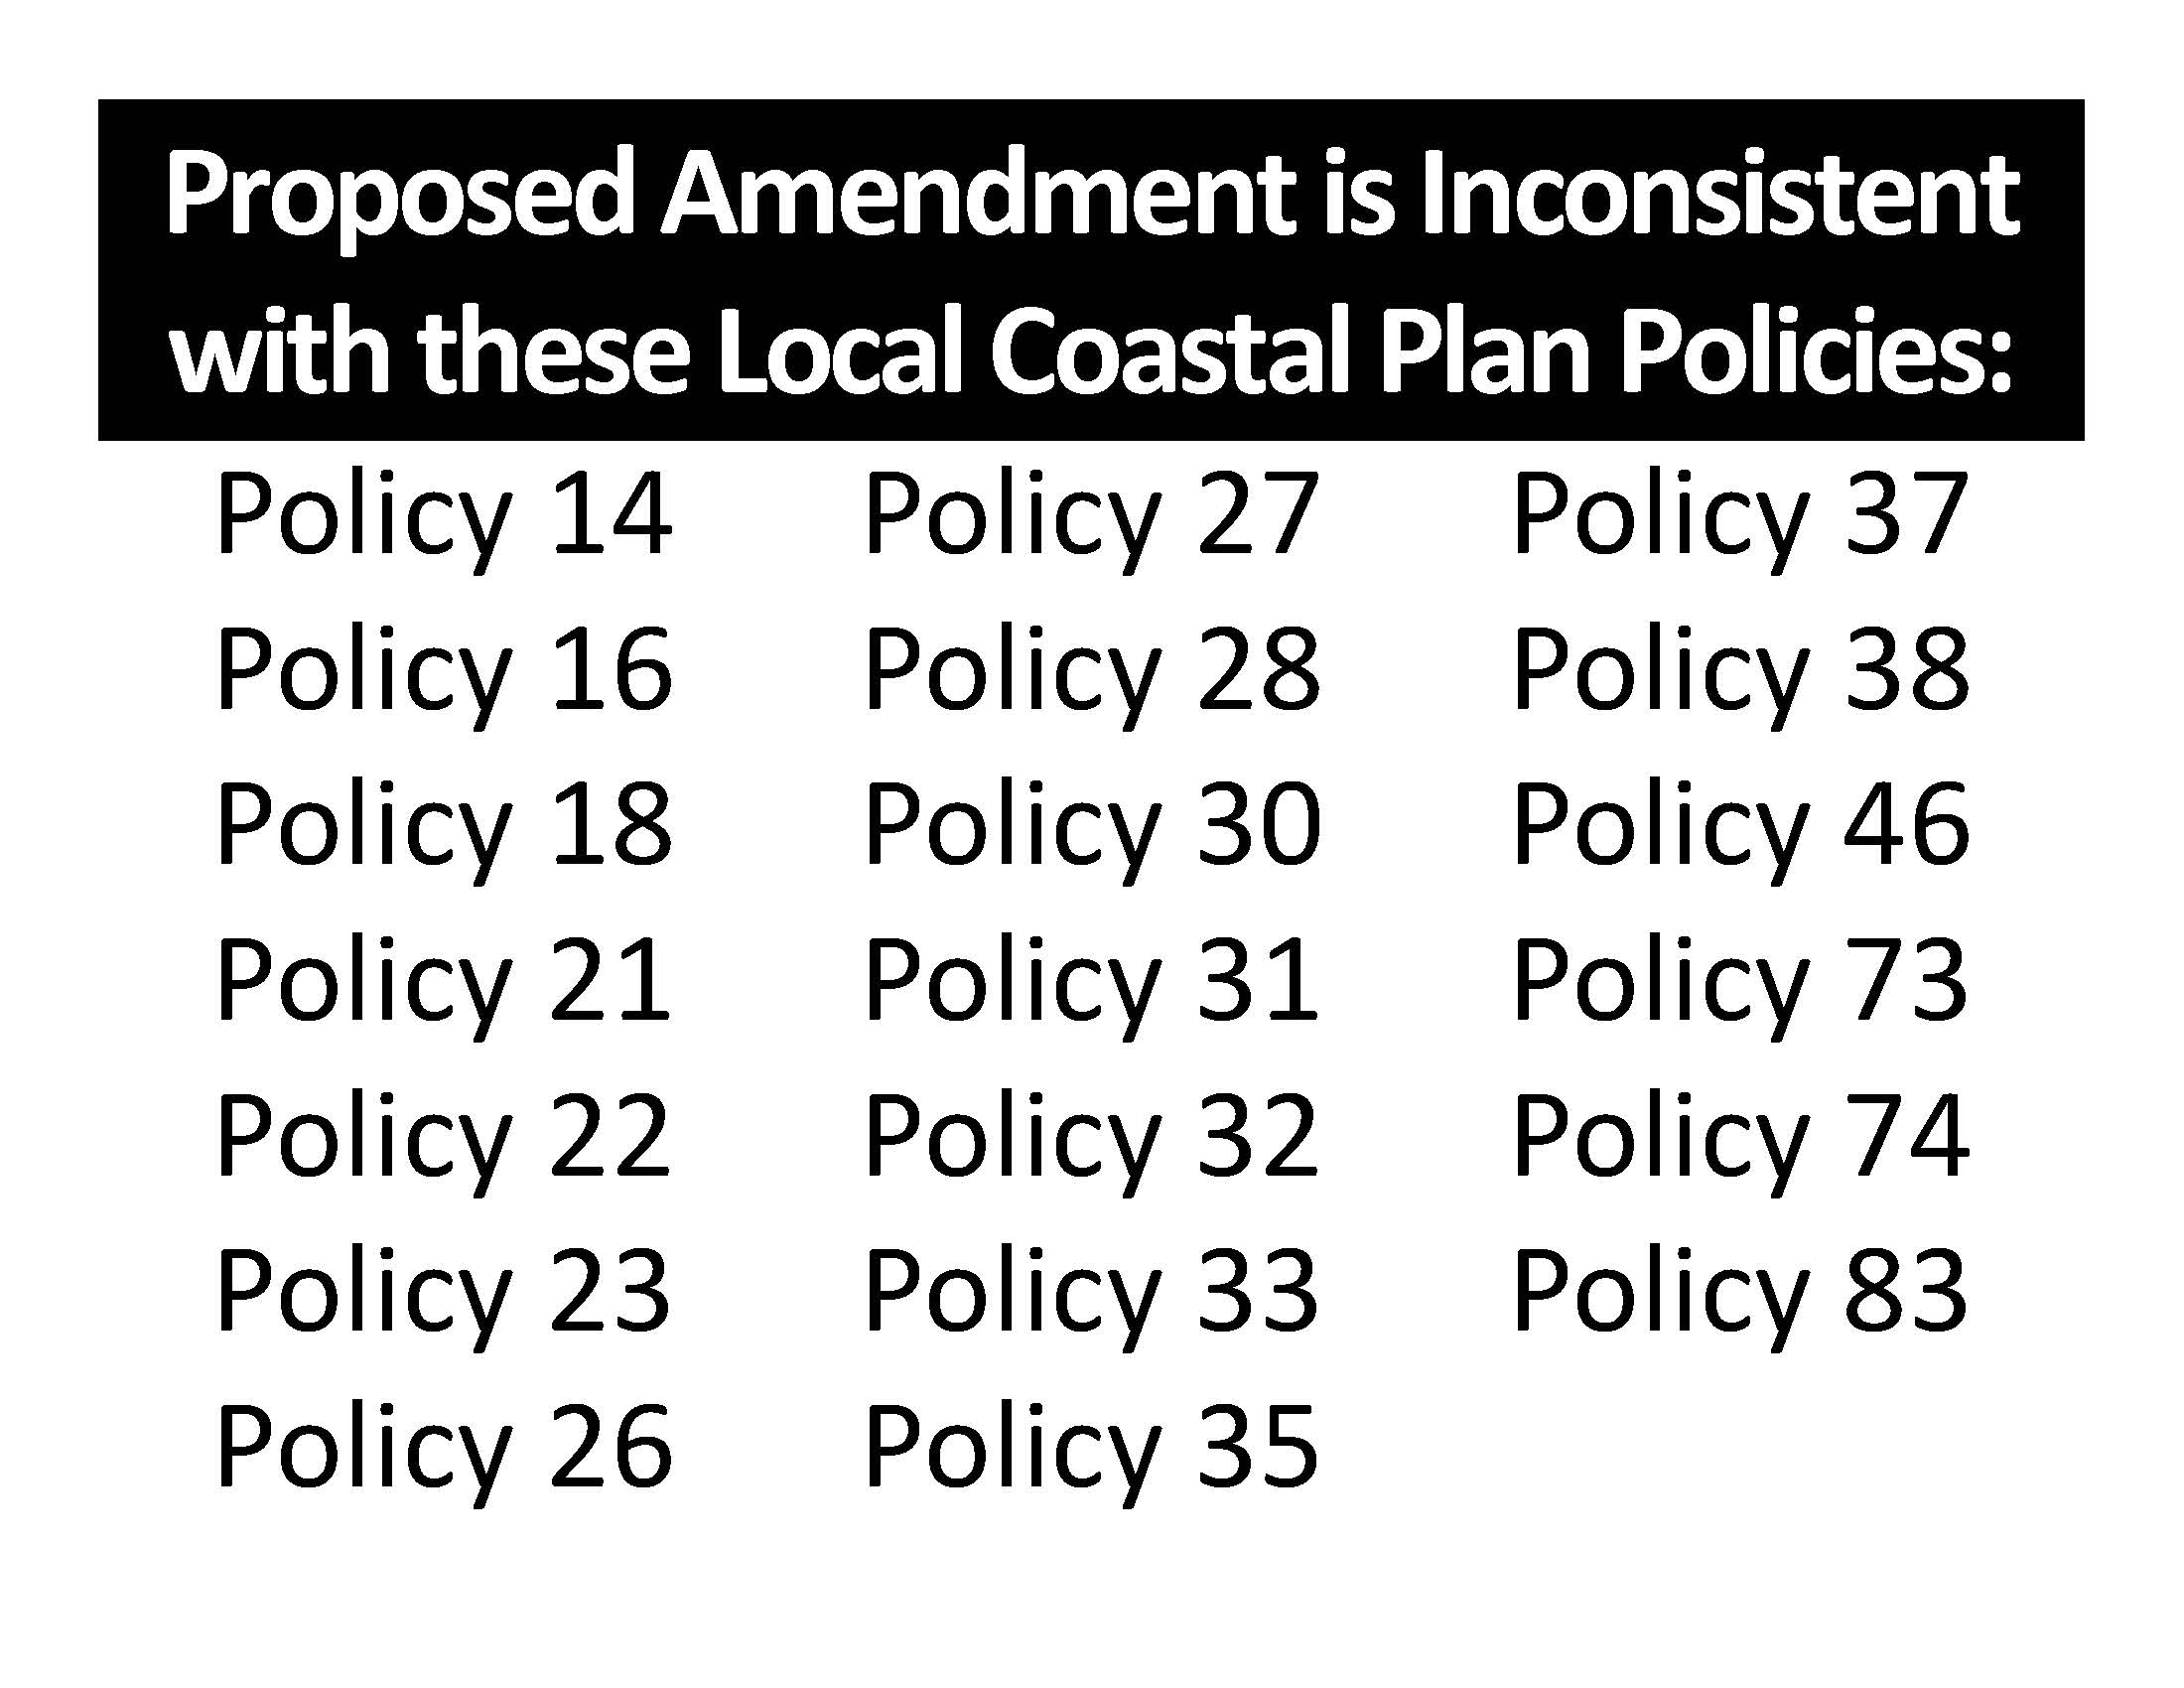 Thr Proposed Develpment is Inconsistent with 20 of the Local Coastal Plan Policies